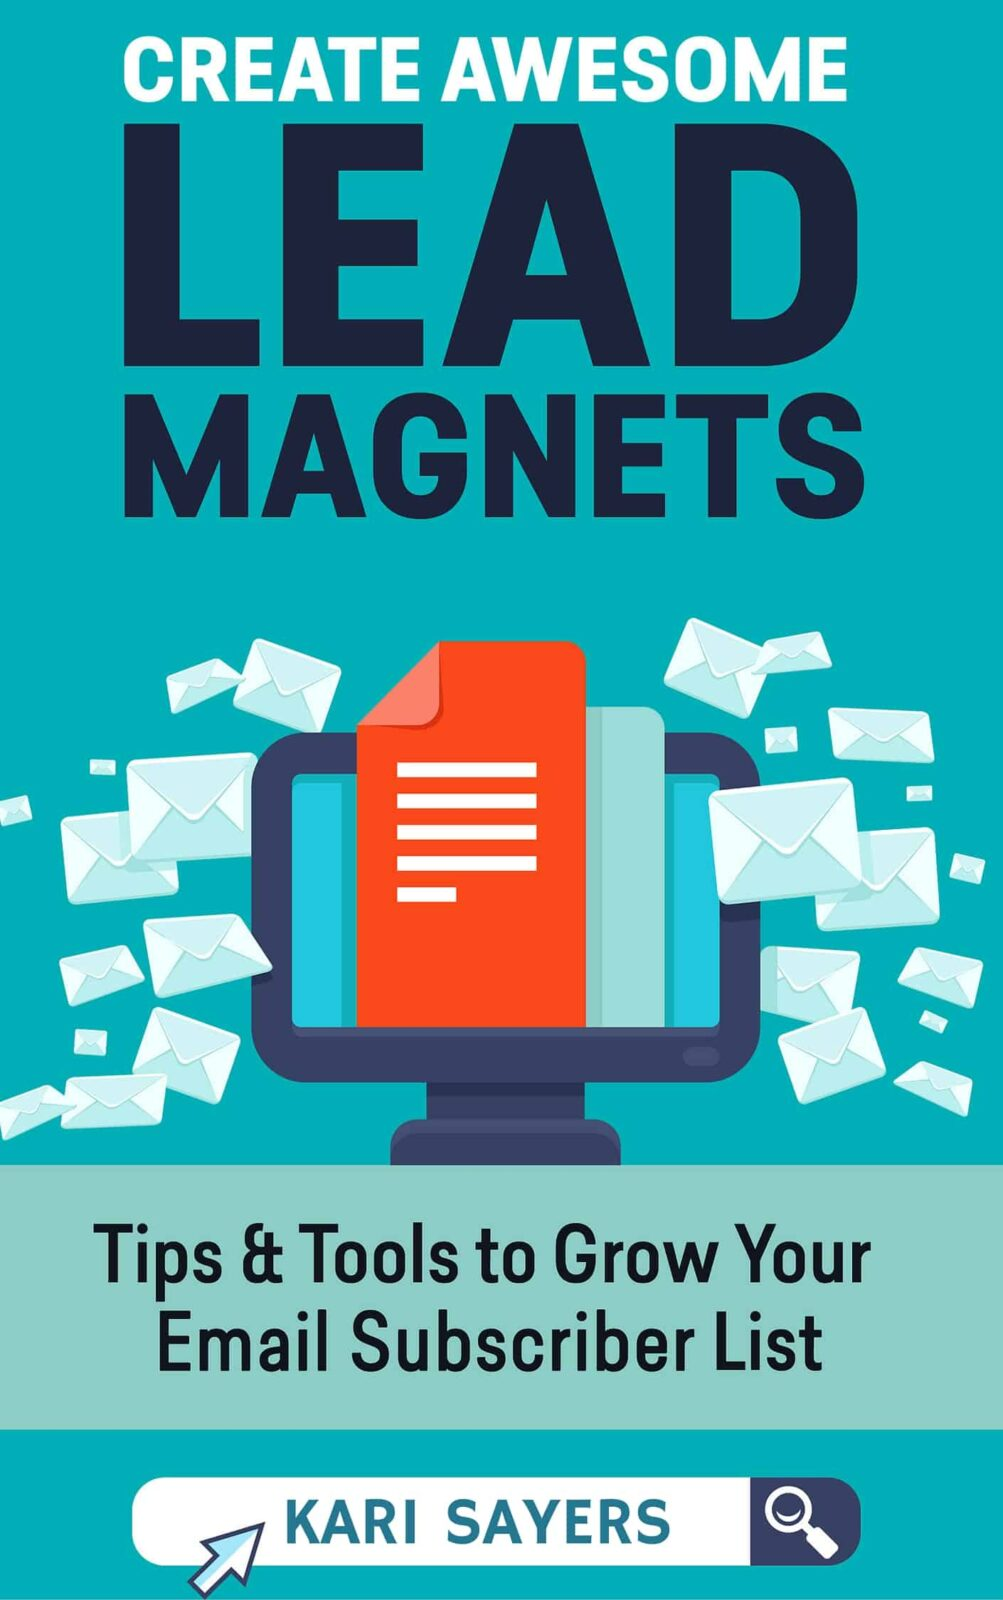 Create Awesome Lead Magnets by Kari Sayers